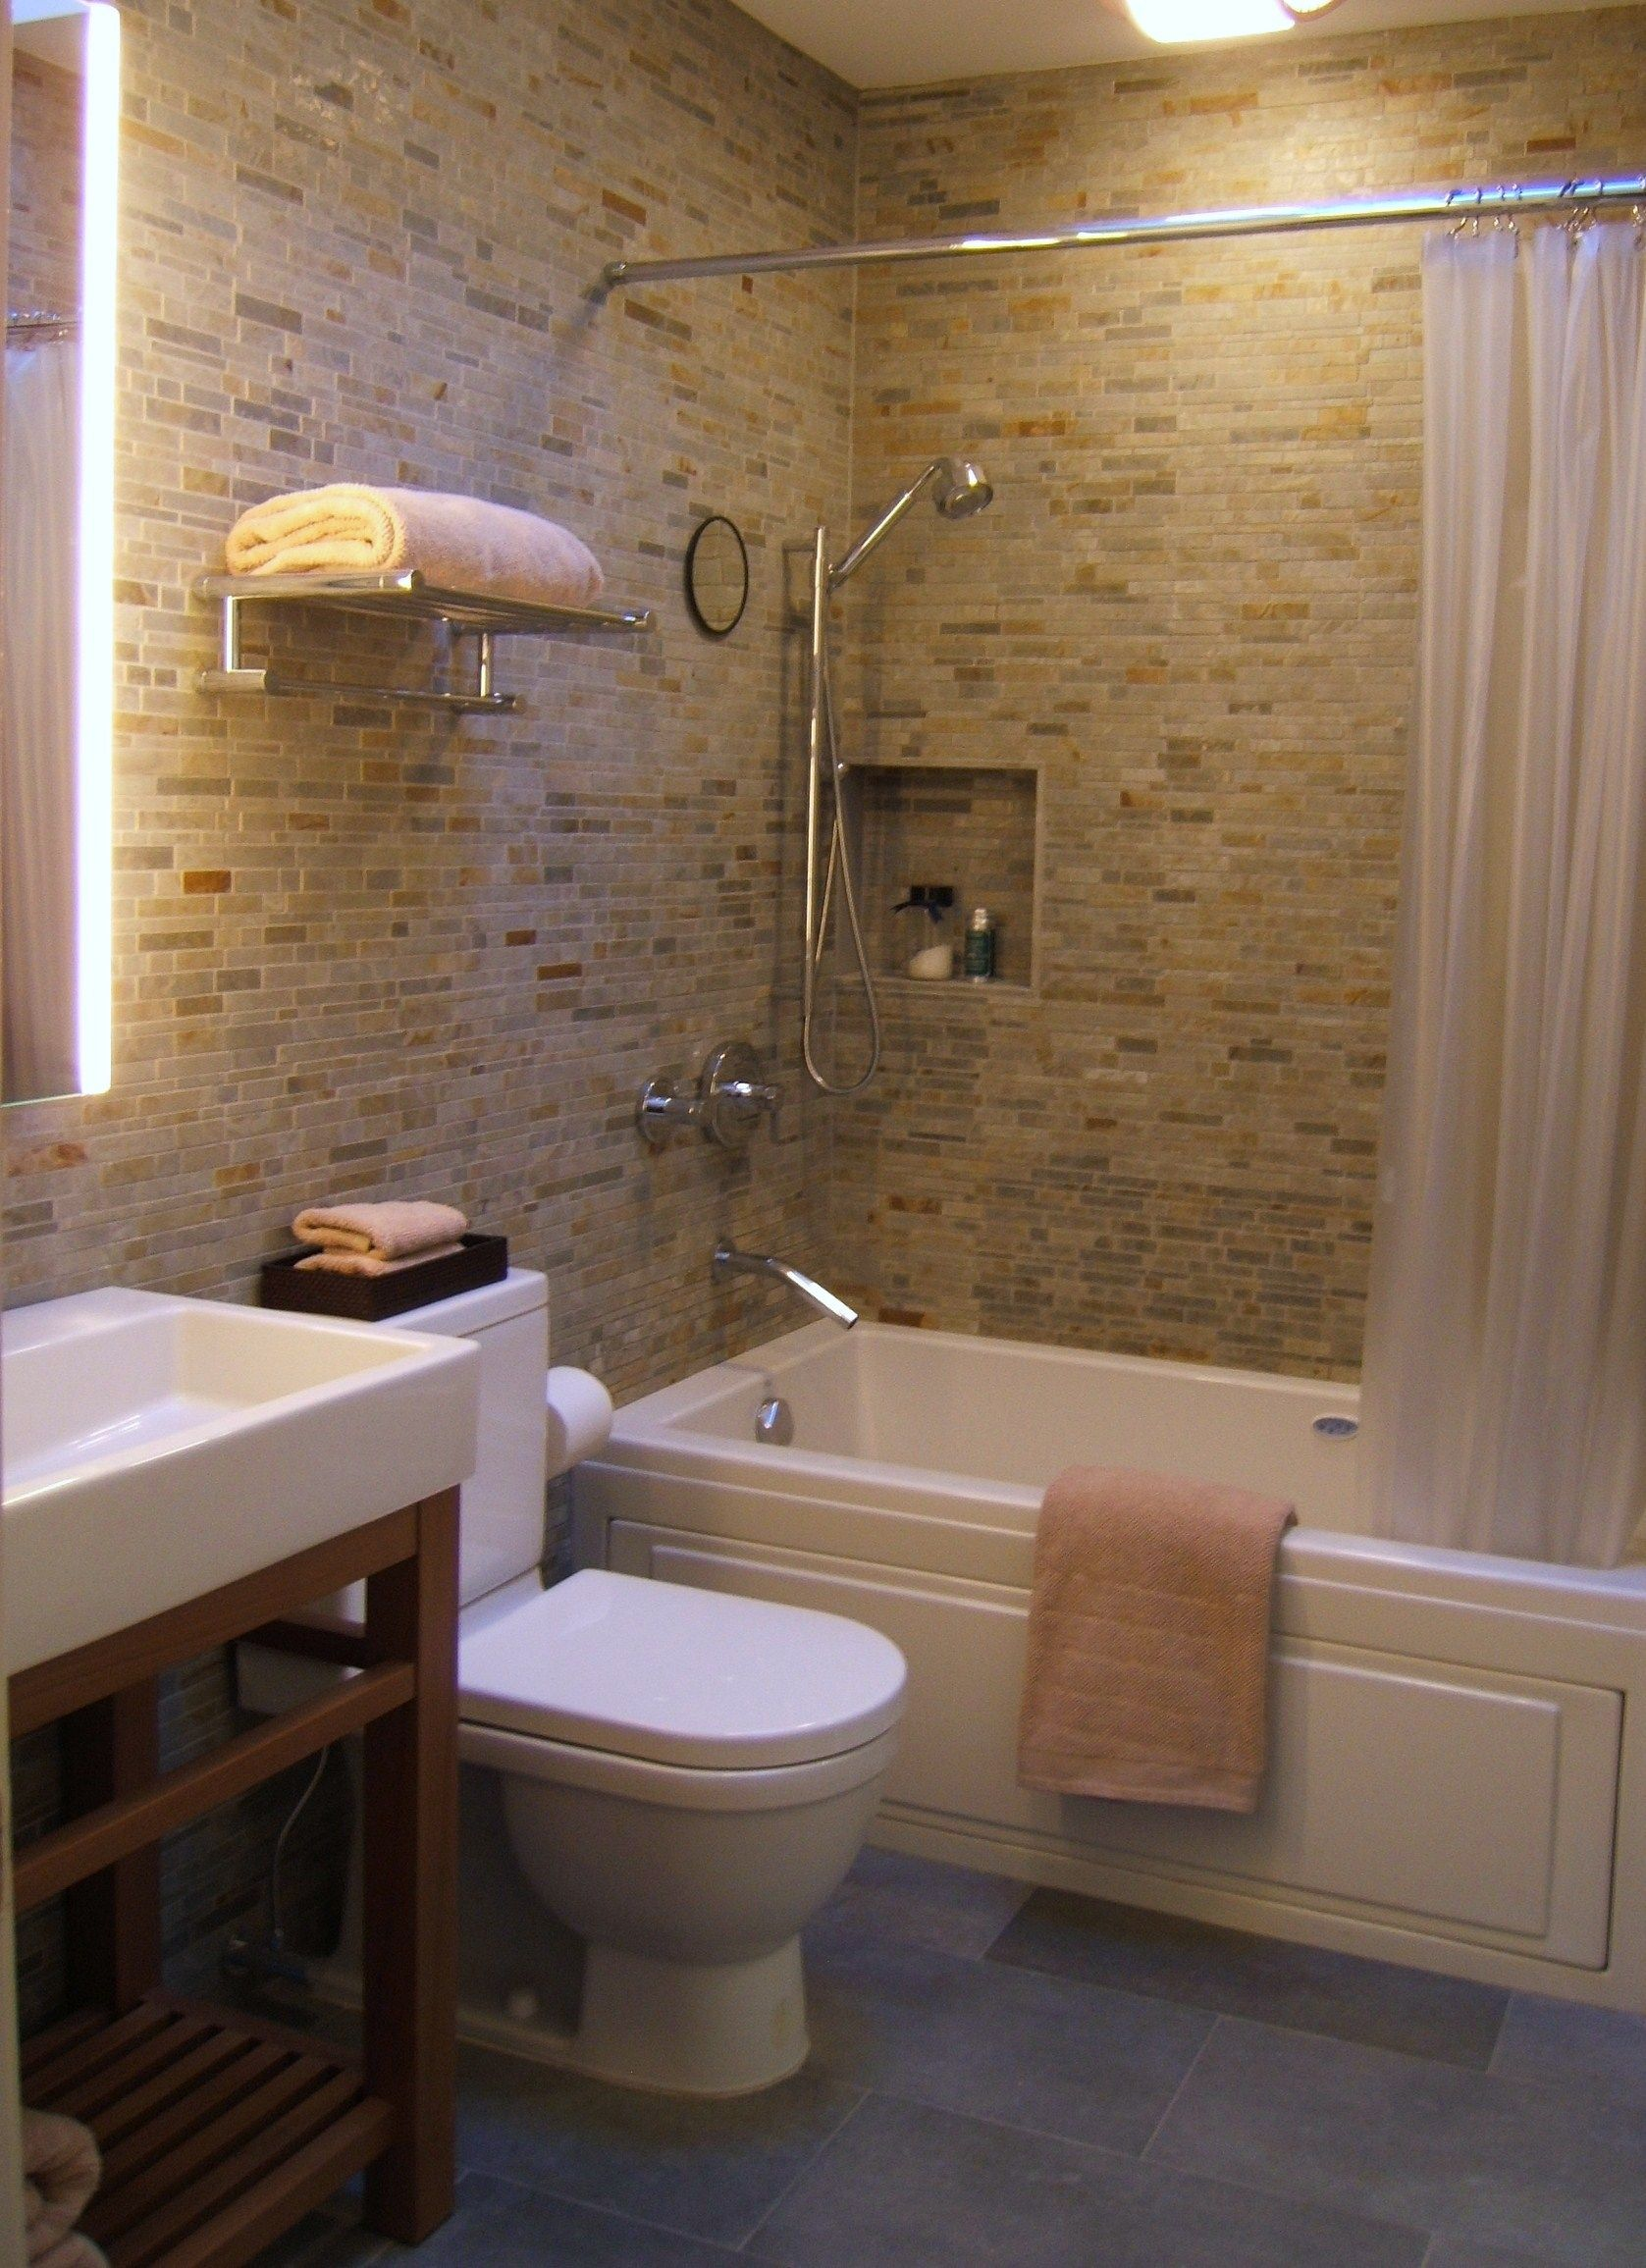 Small bathroom designs south africa small bath for Mini bathroom design